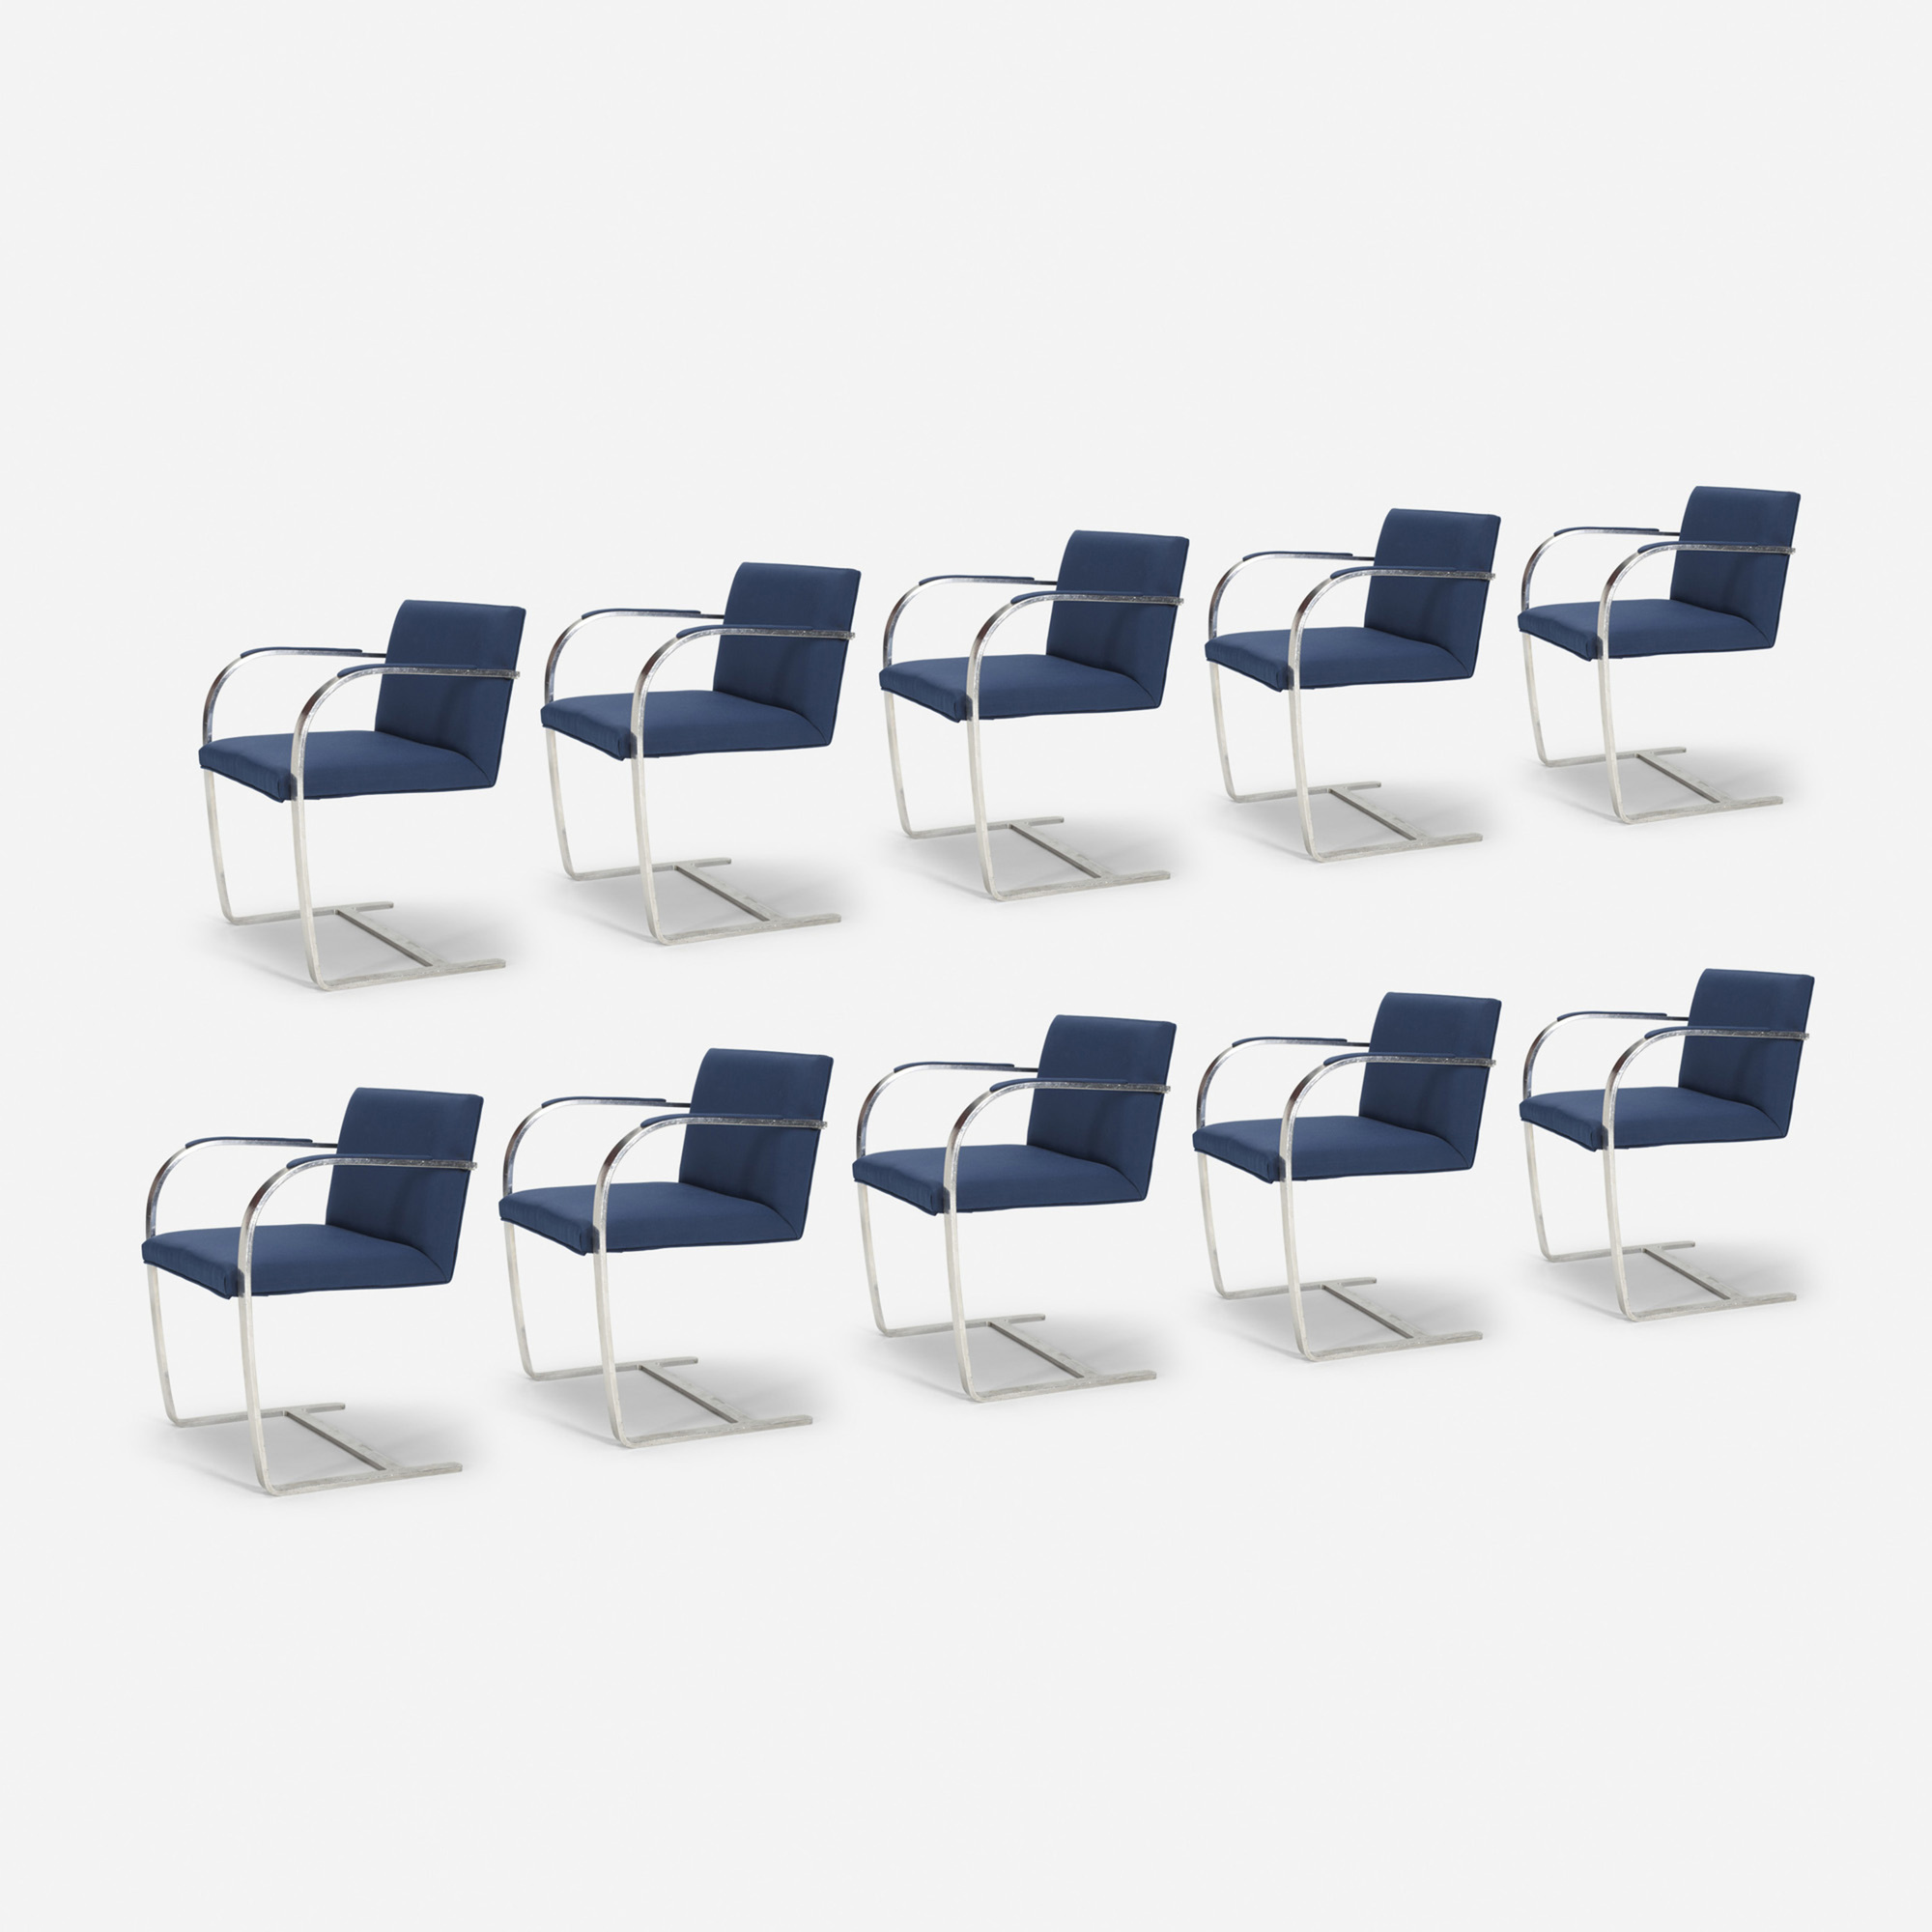 202: Ludwig Mies van der Rohe / Brno chairs from The Four Seasons, set of ten (1 of 1)